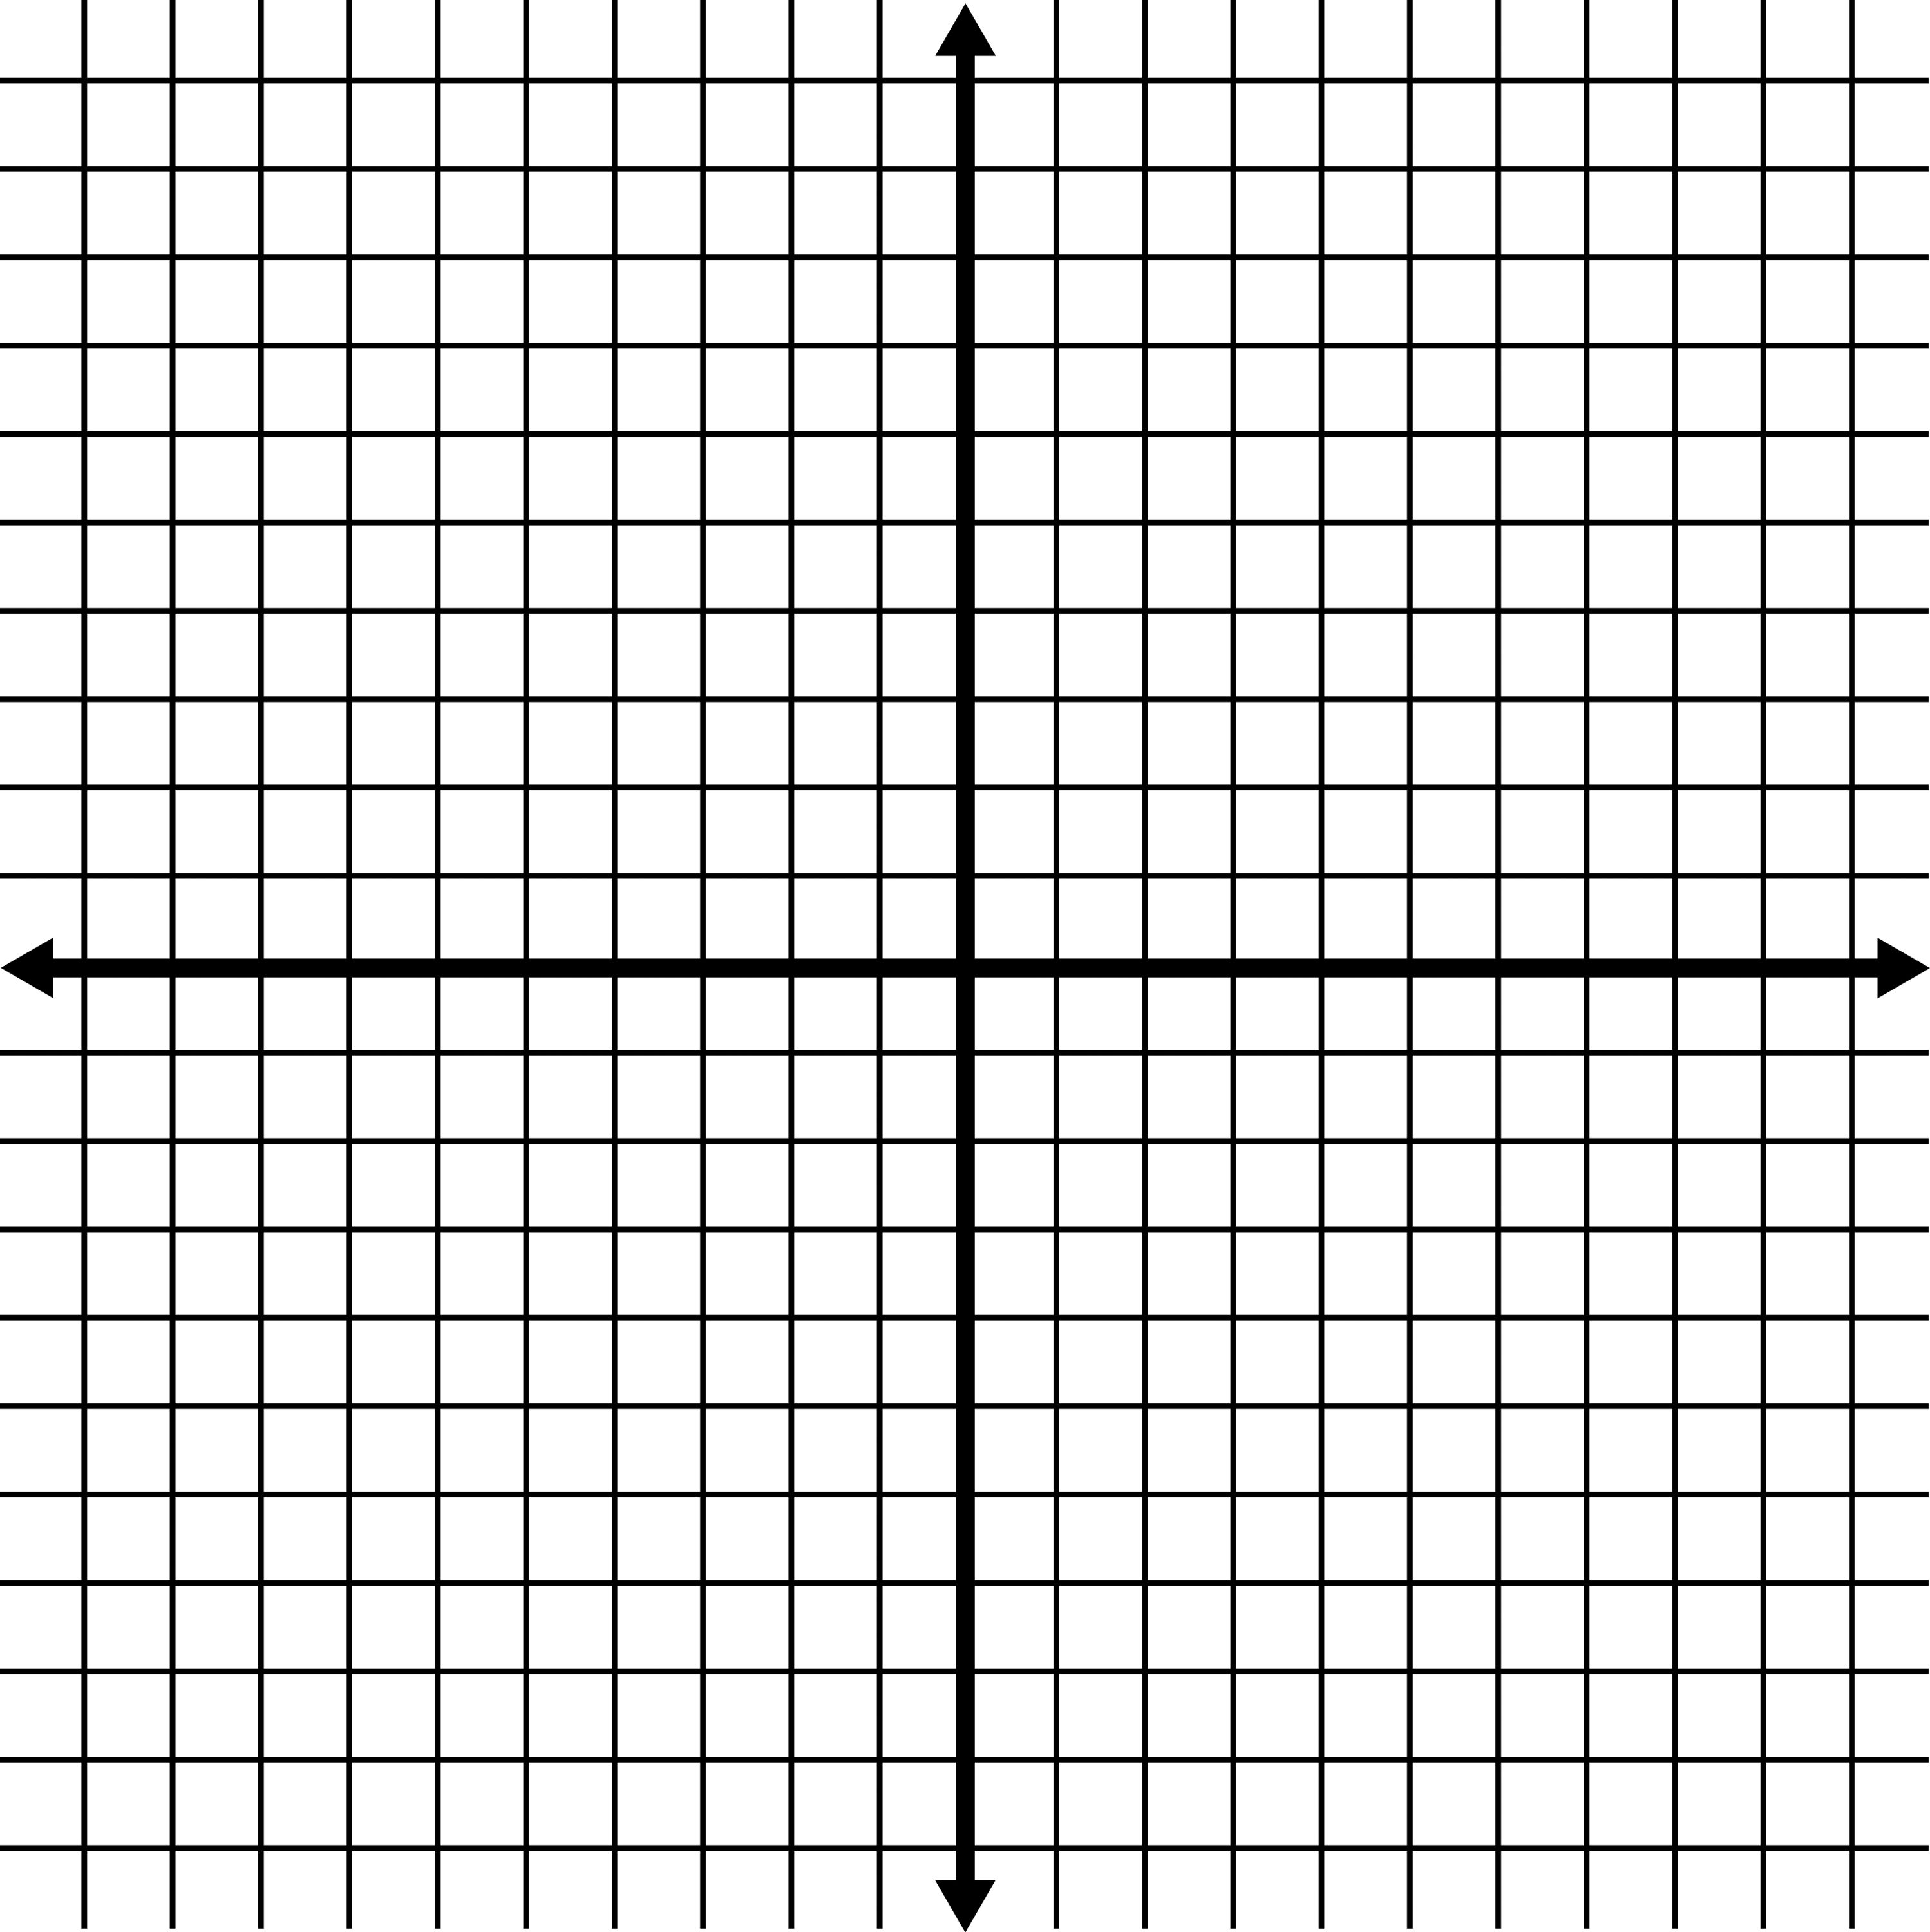 graphing grid